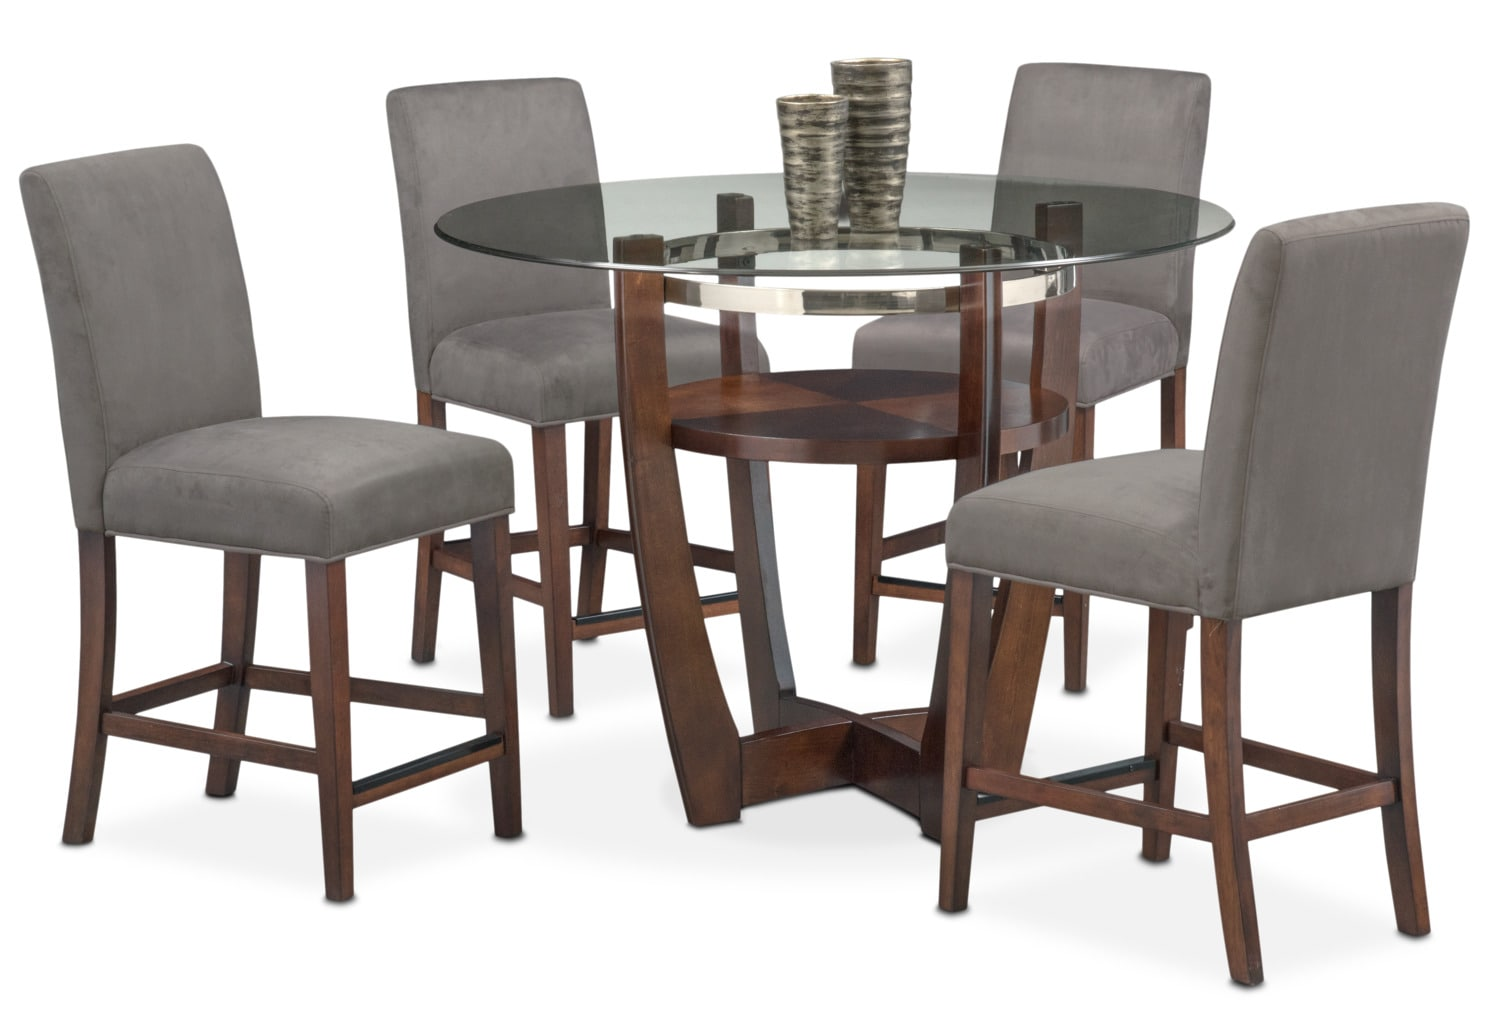 Counter Height Dining Room Chairs Alcove Counter Height Table And 4 Side Chairs Gray